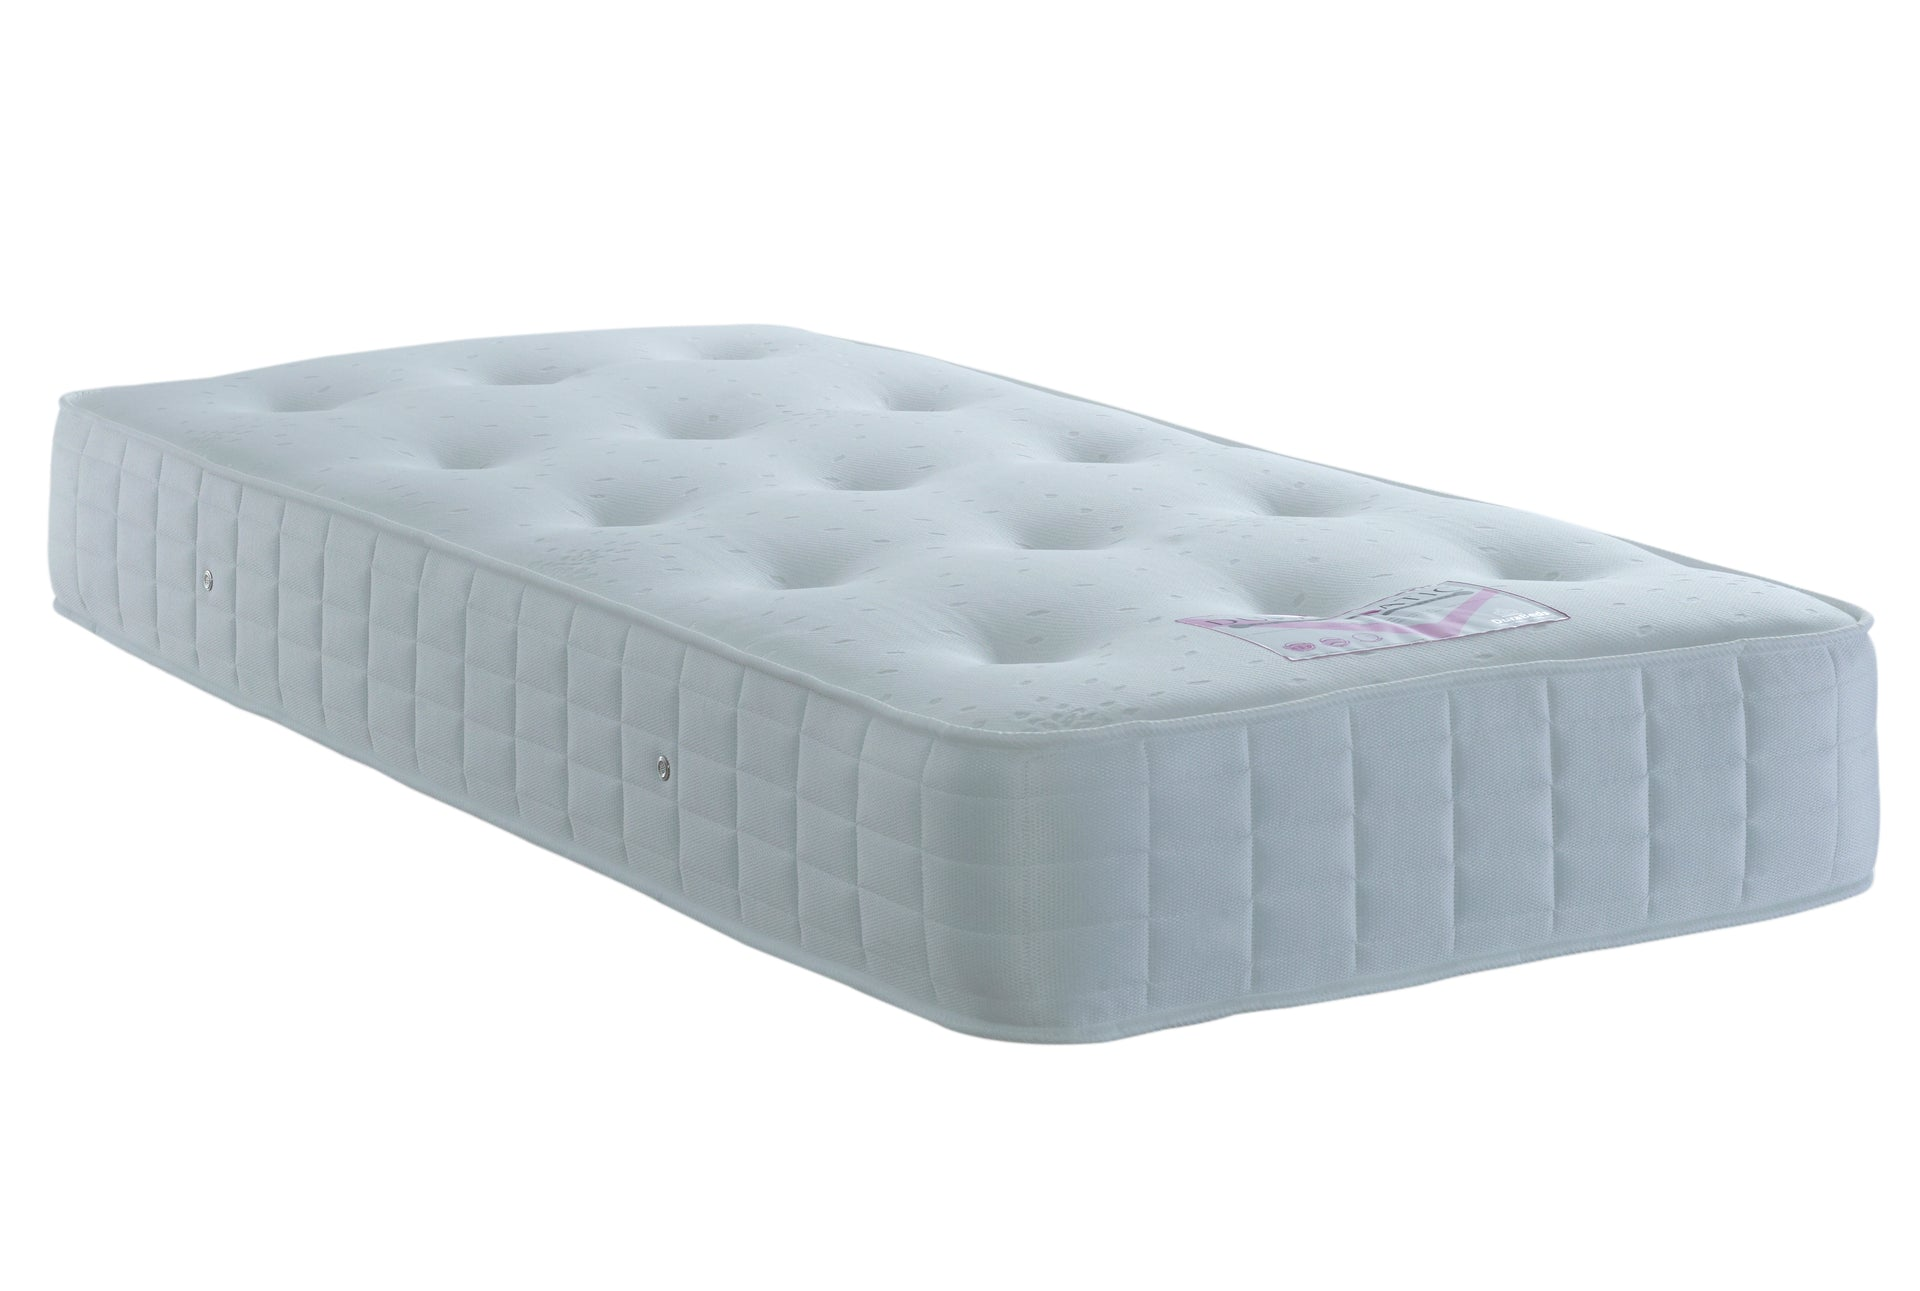 Easy Living Zero Gravity Adjustable Bed Mattresses